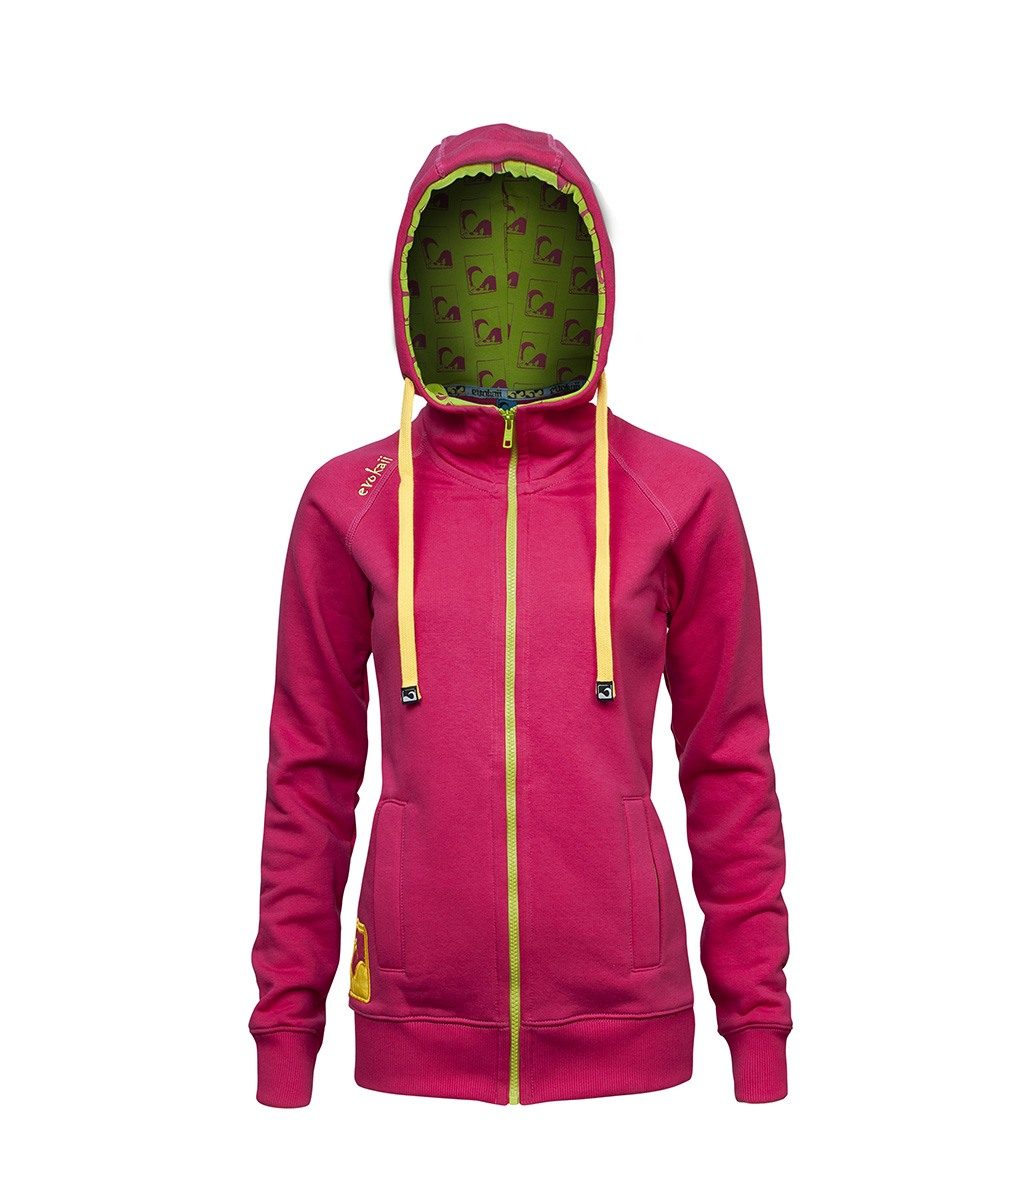 761631fc746 Women Kite Surf Style Zipper Hoodie - High Neck Wind Protection